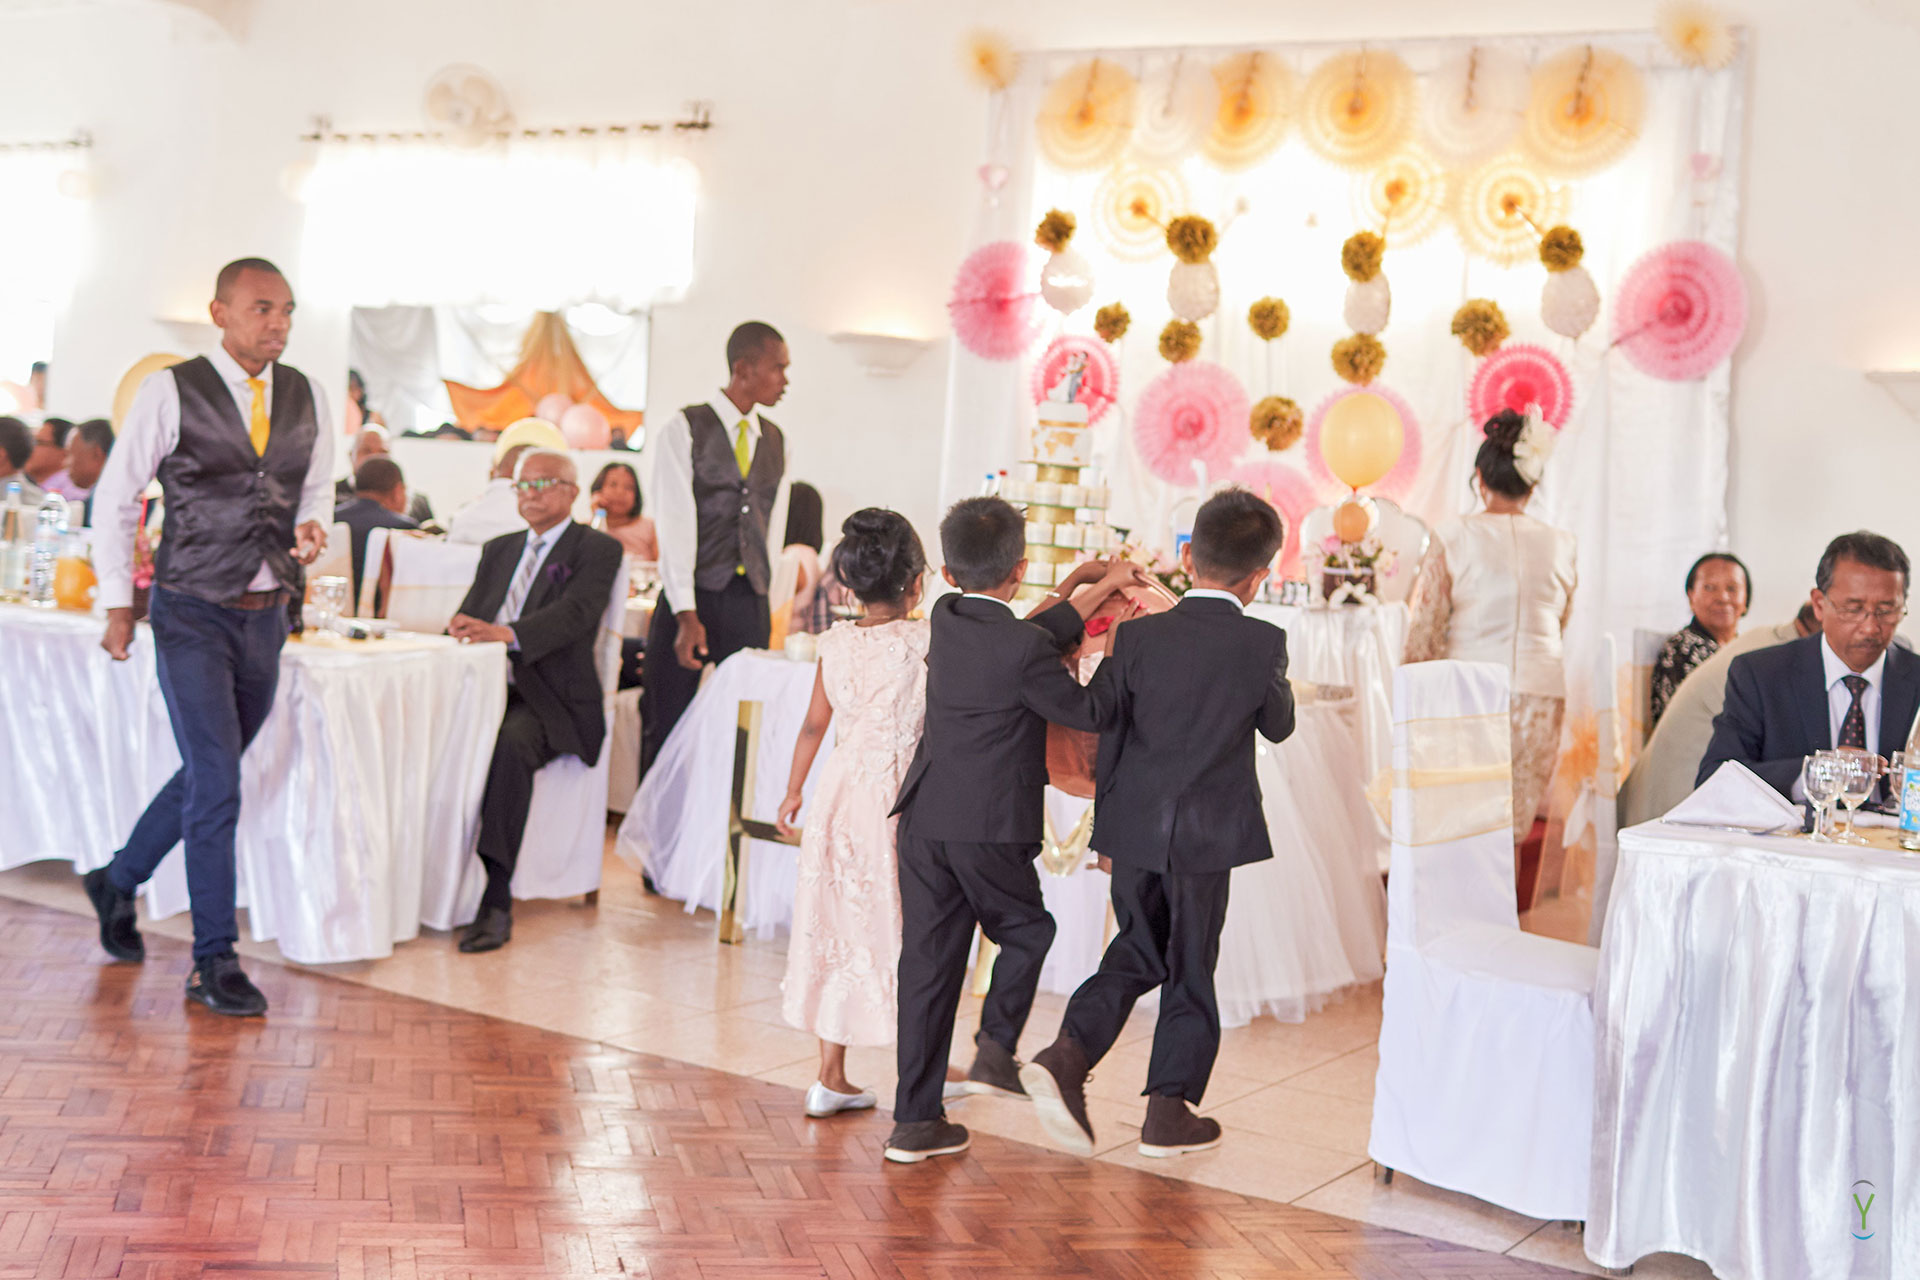 0331_Mariage_Mbola_Hoby_18-09-22